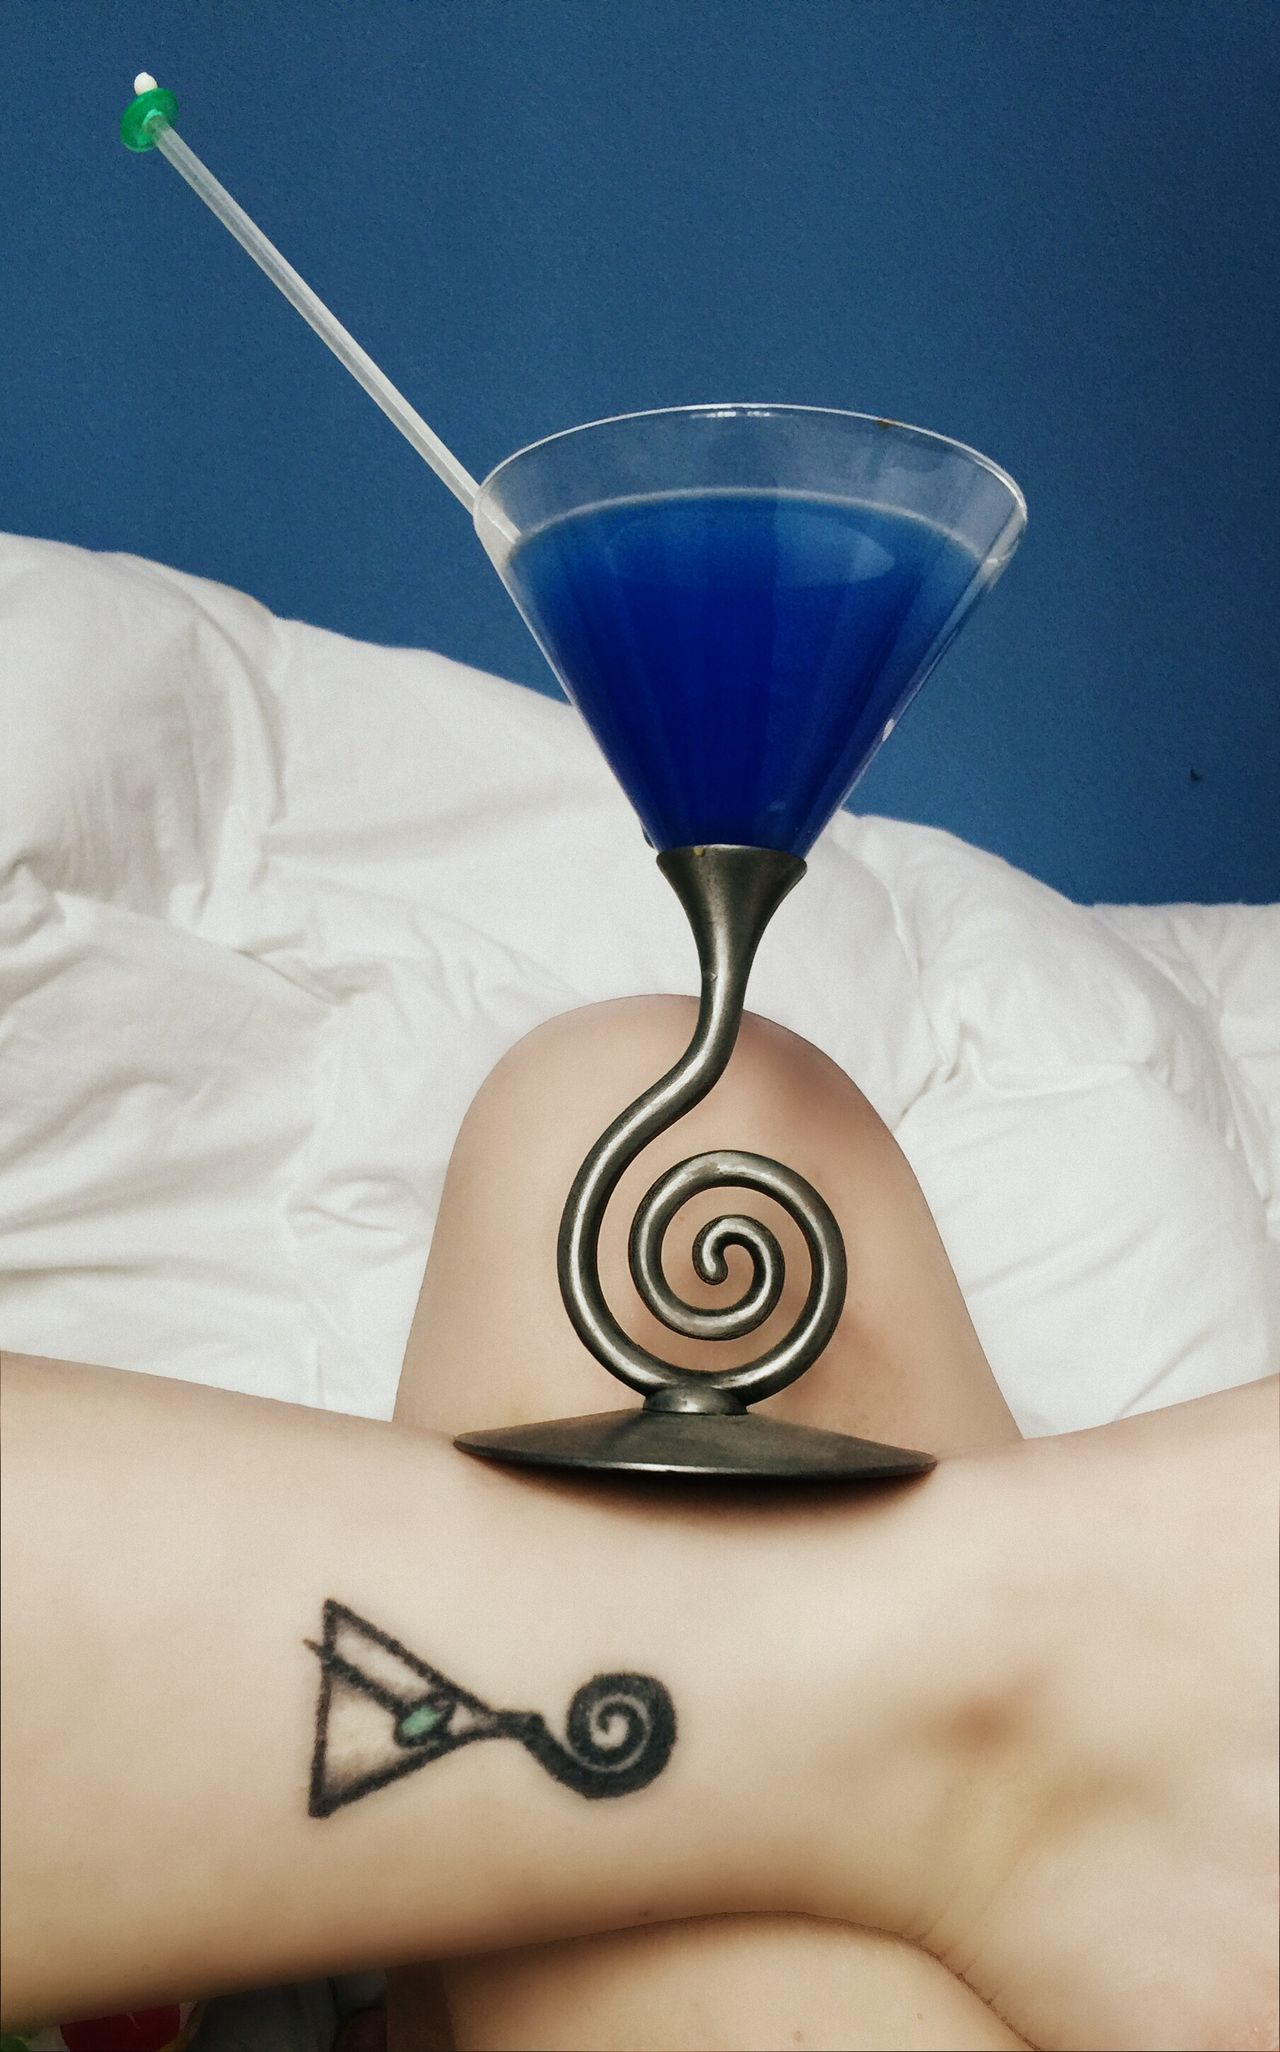 Liquid Lunch Tattoo Martini Tattoo Blue Martini Martini Blue Cocktail Cocktail In Bed Rebel Rebel Have A Drink Balanced Cocktails Night Night, Sleep Tight Drink Martini Glass Girls With Tattoos Legs Thats Me  Selfies Home Is Where The Art Is From My Point Of View Tattooed Drinking Fine Art Photography Two Is Better Than One